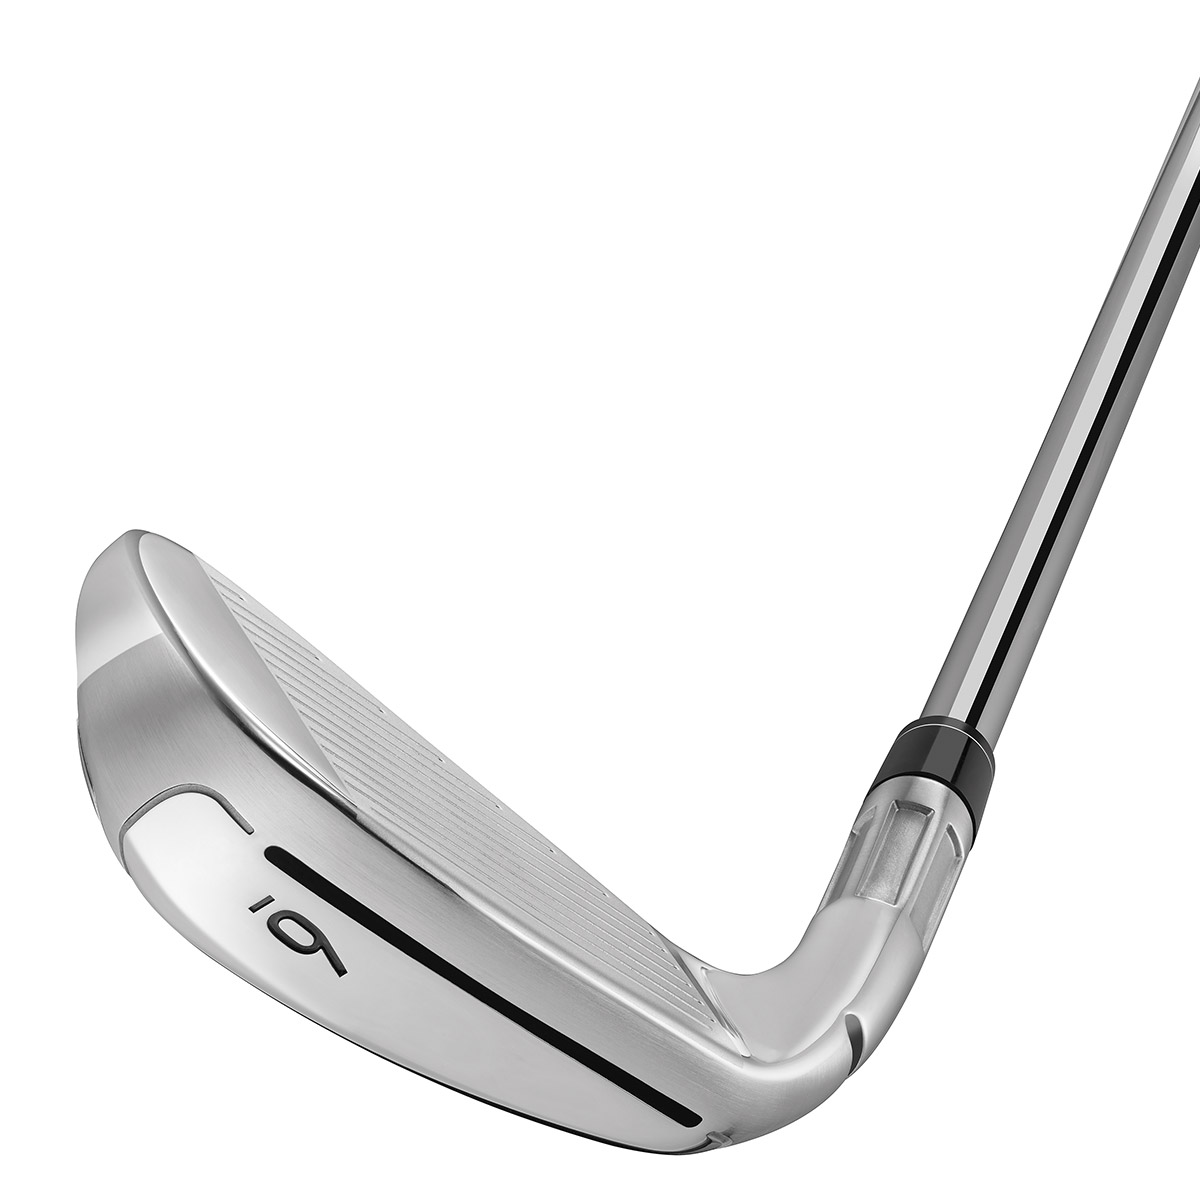 TaylorMade M6 Graphite Irons from american golf